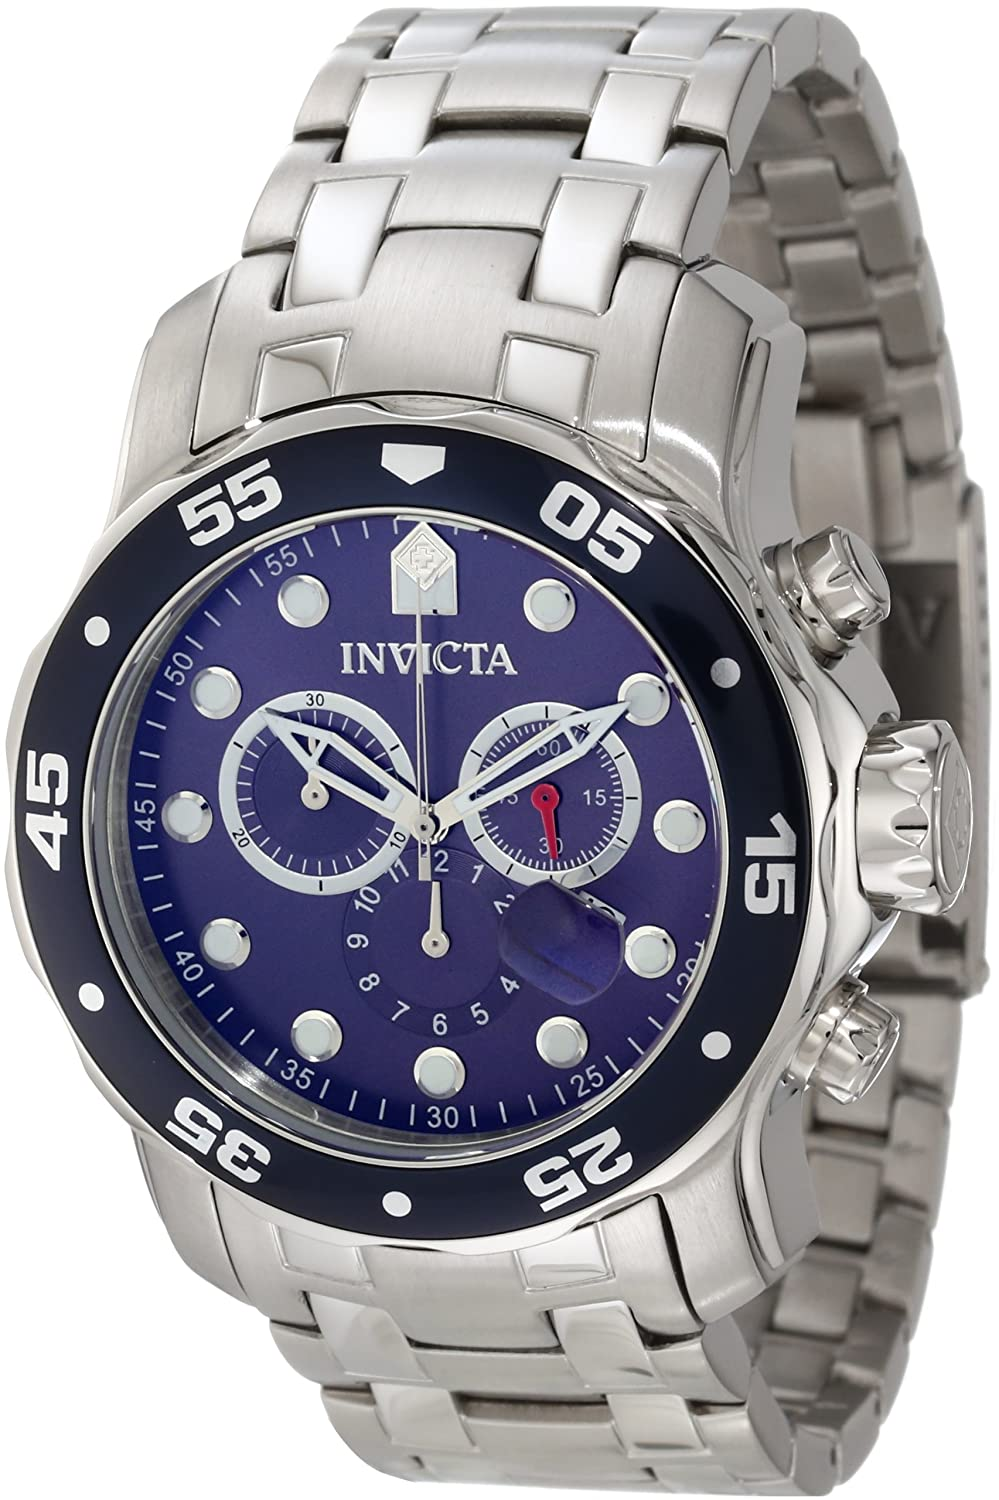 Popular Watch Reviews: # Invicta-0070 Men Watch Review